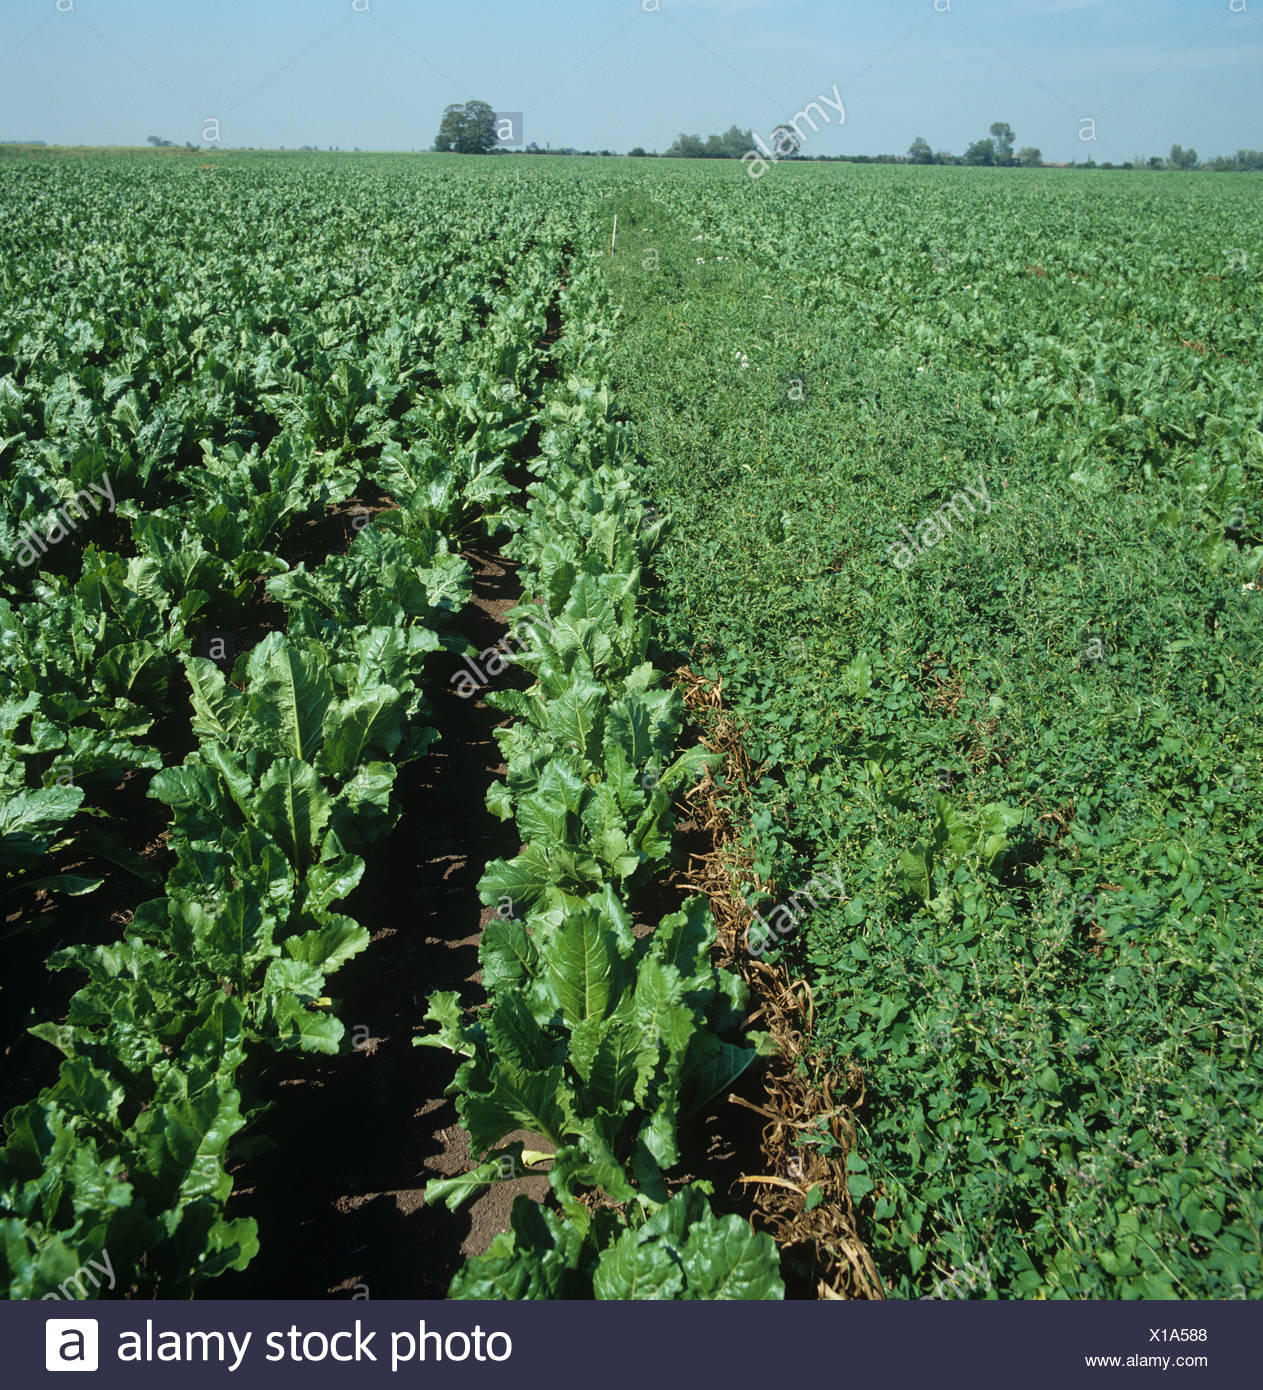 Sugar beet trial with weed treatment controlling black bindweed compared to untreated - Stock Image